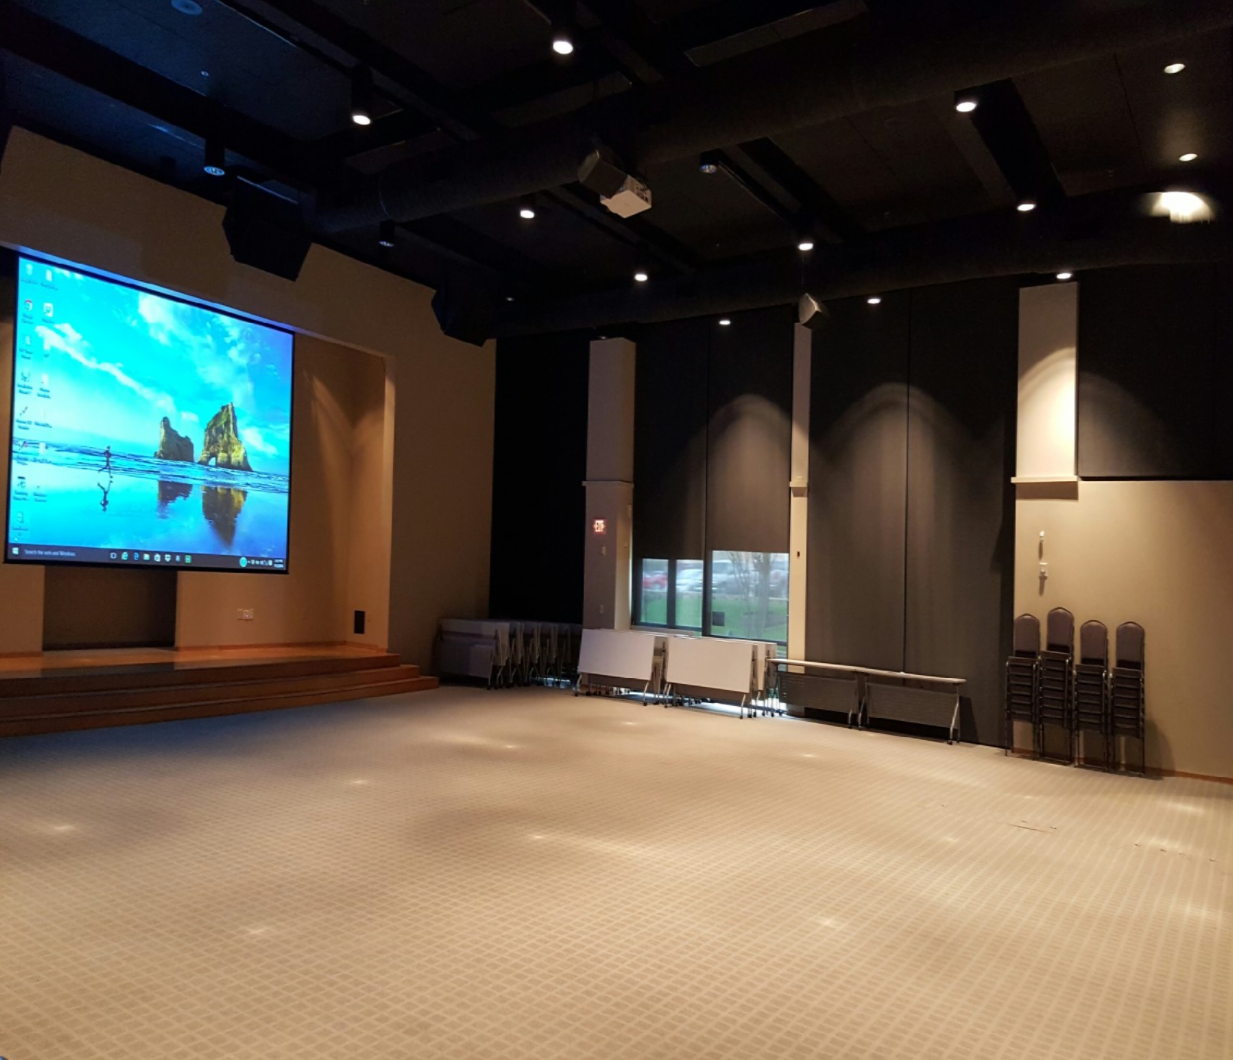 Meeting room with no furniture and a desktop screen projected on a projector screen